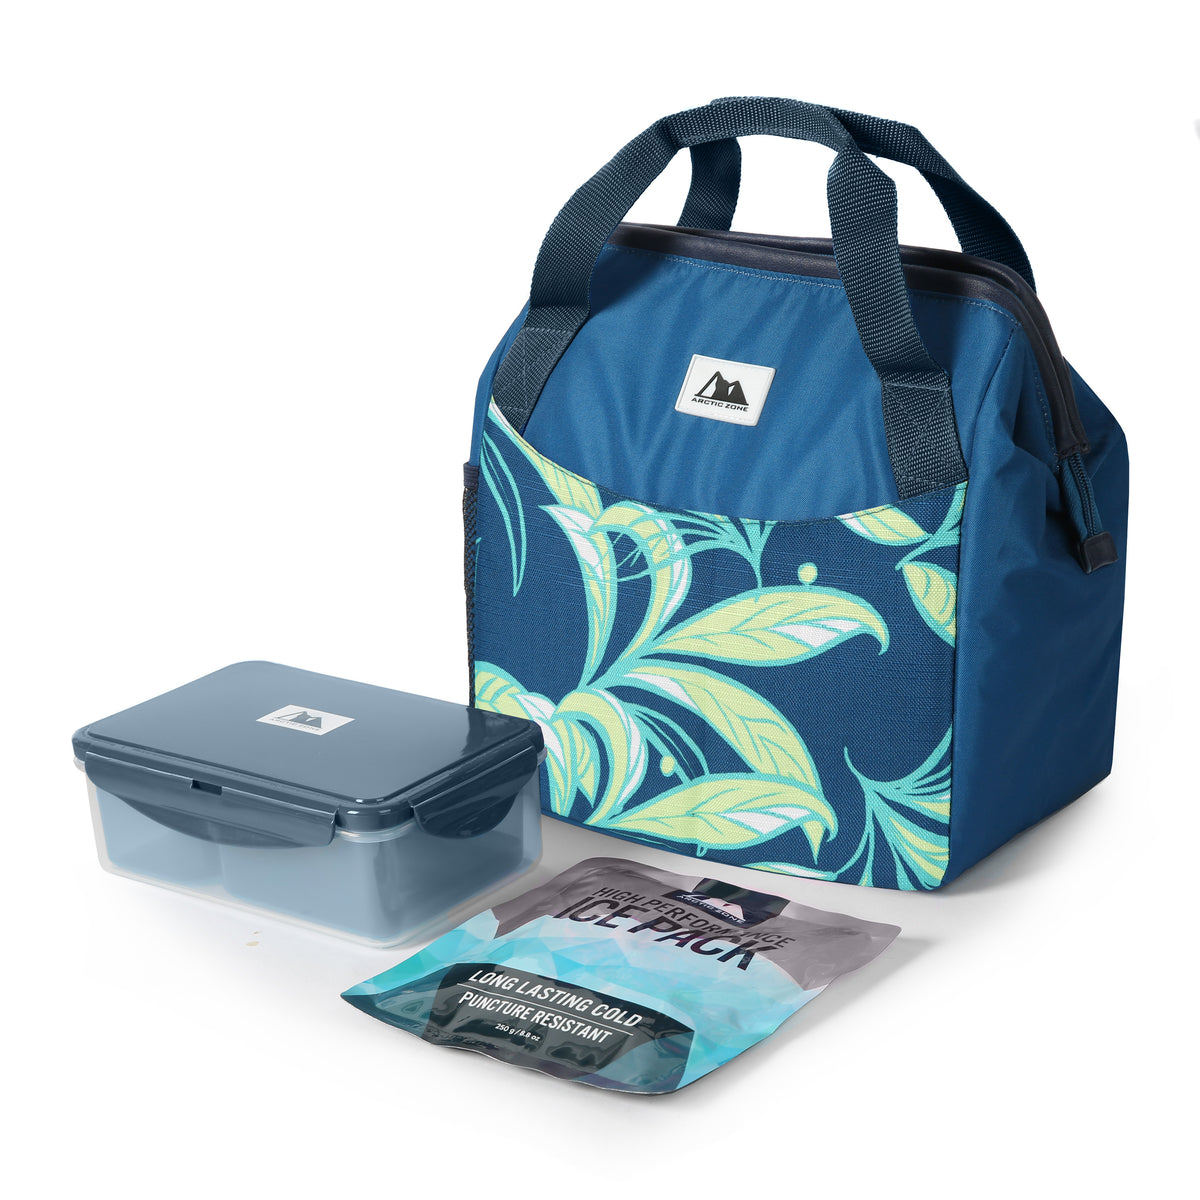 Arctic Zone® High Performance Meal Prep Lunch Bag M.D. - Leafy Lime - Closed, with containers and ice pack